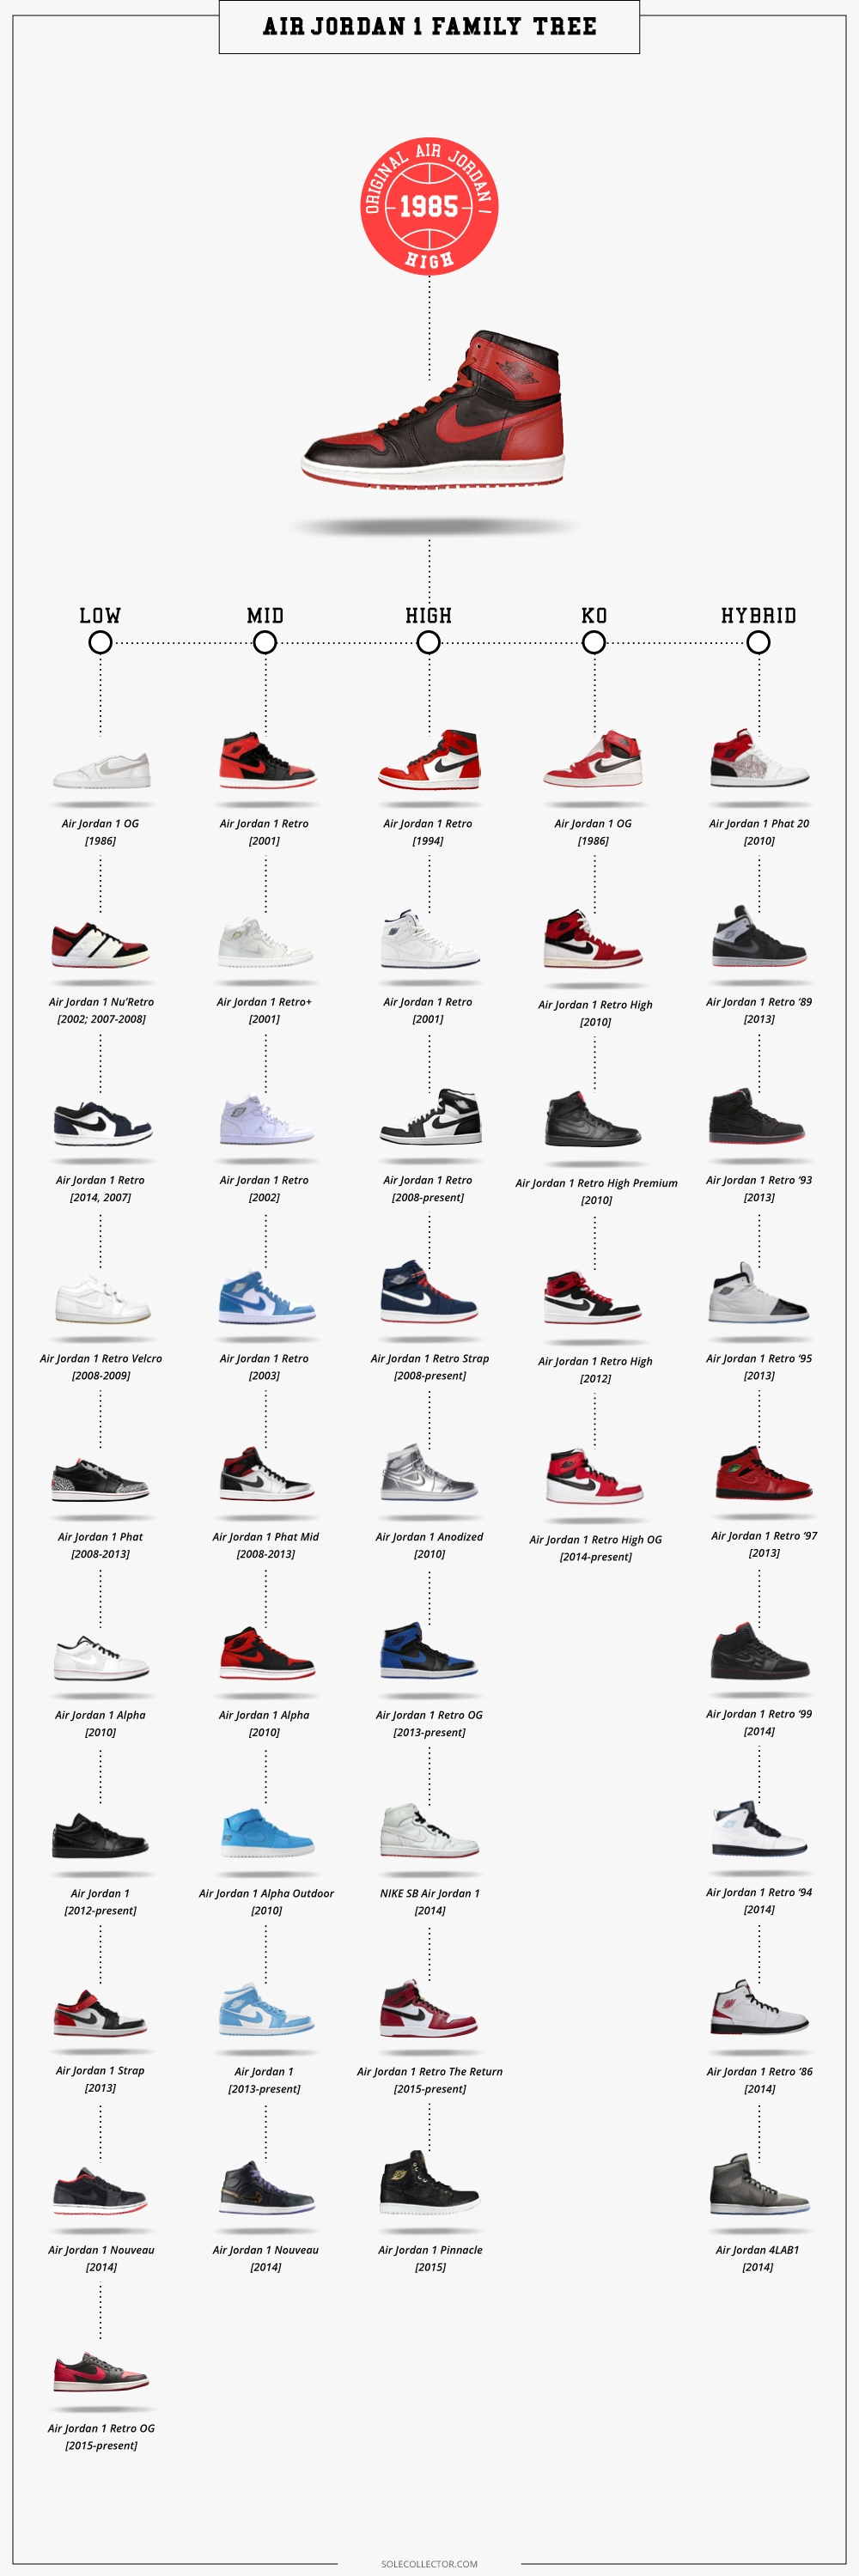 air jordan 1 price list